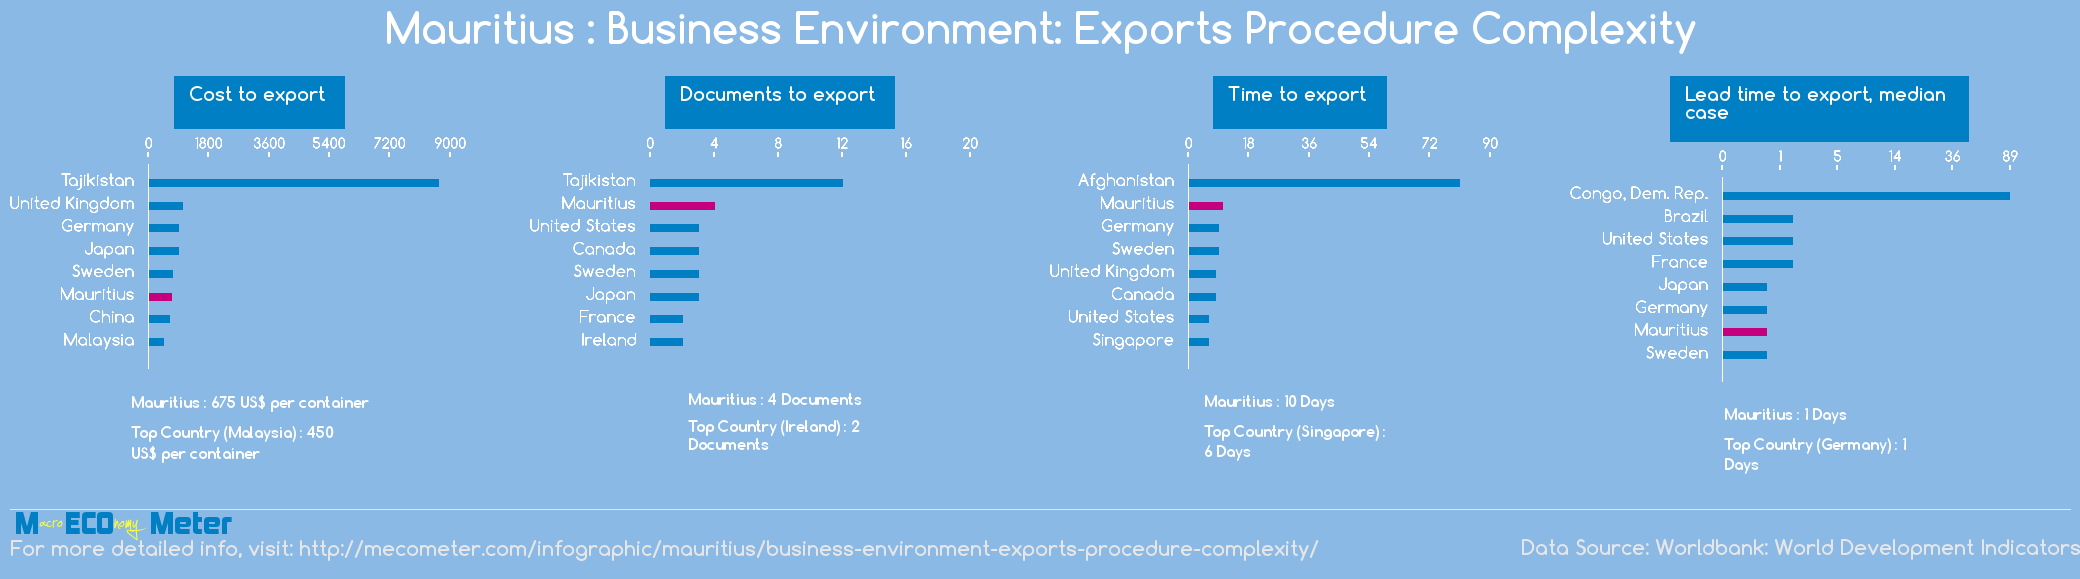 Mauritius : Business Environment: Exports Procedure Complexity